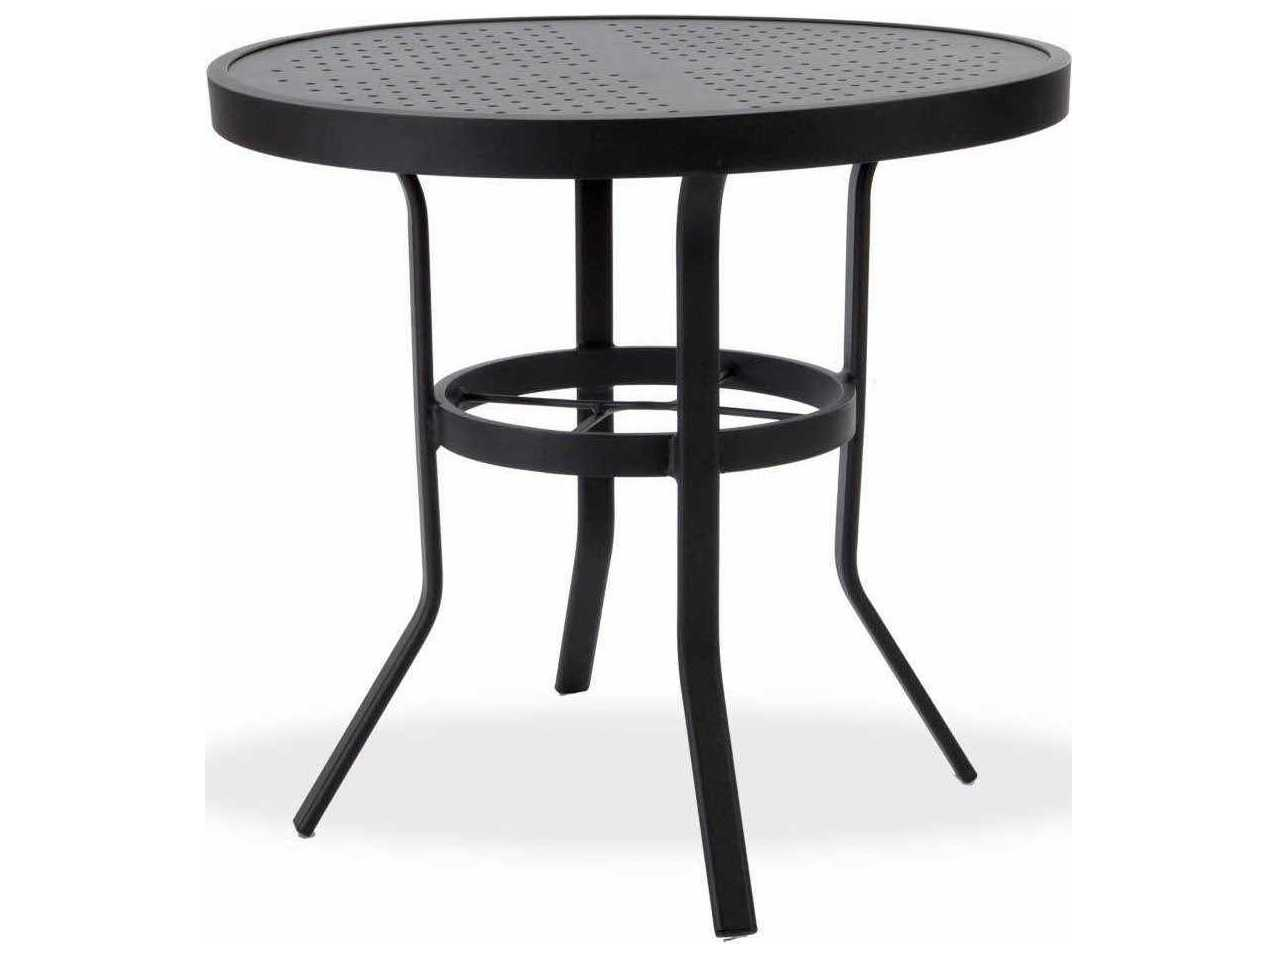 winston stamped aluminum 30 39 39 round metal dining table m8130st. Black Bedroom Furniture Sets. Home Design Ideas